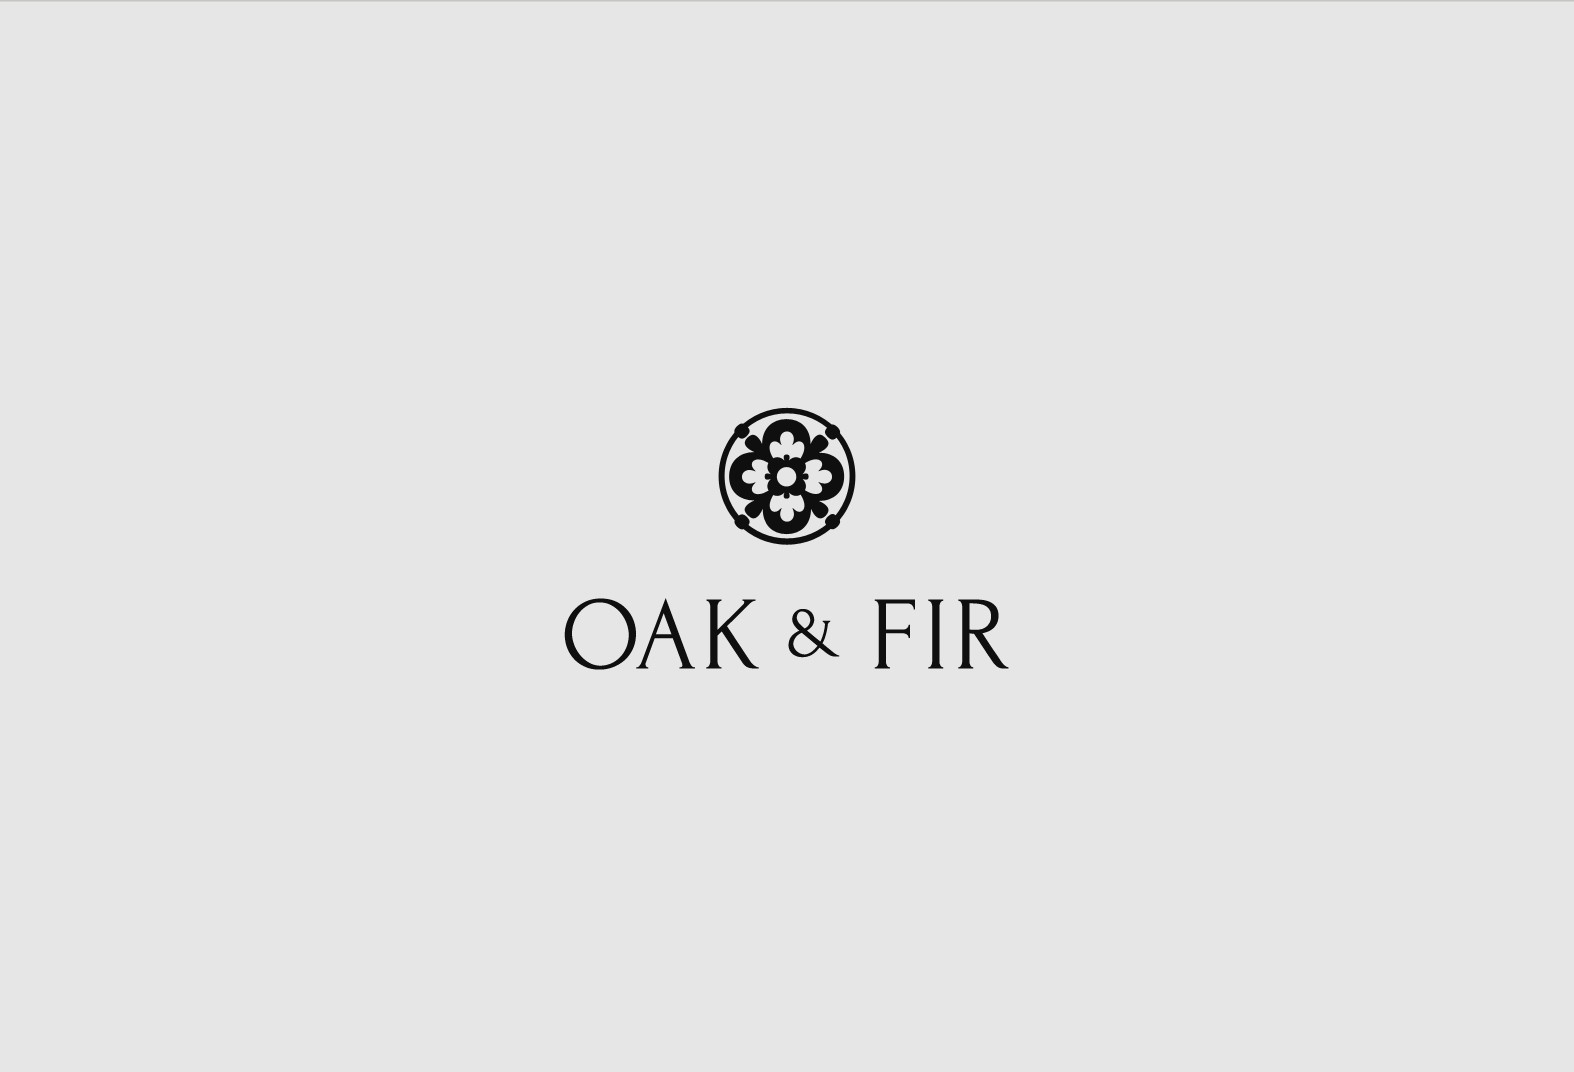 Sophicated logo for handmade leather company Oak & Fir